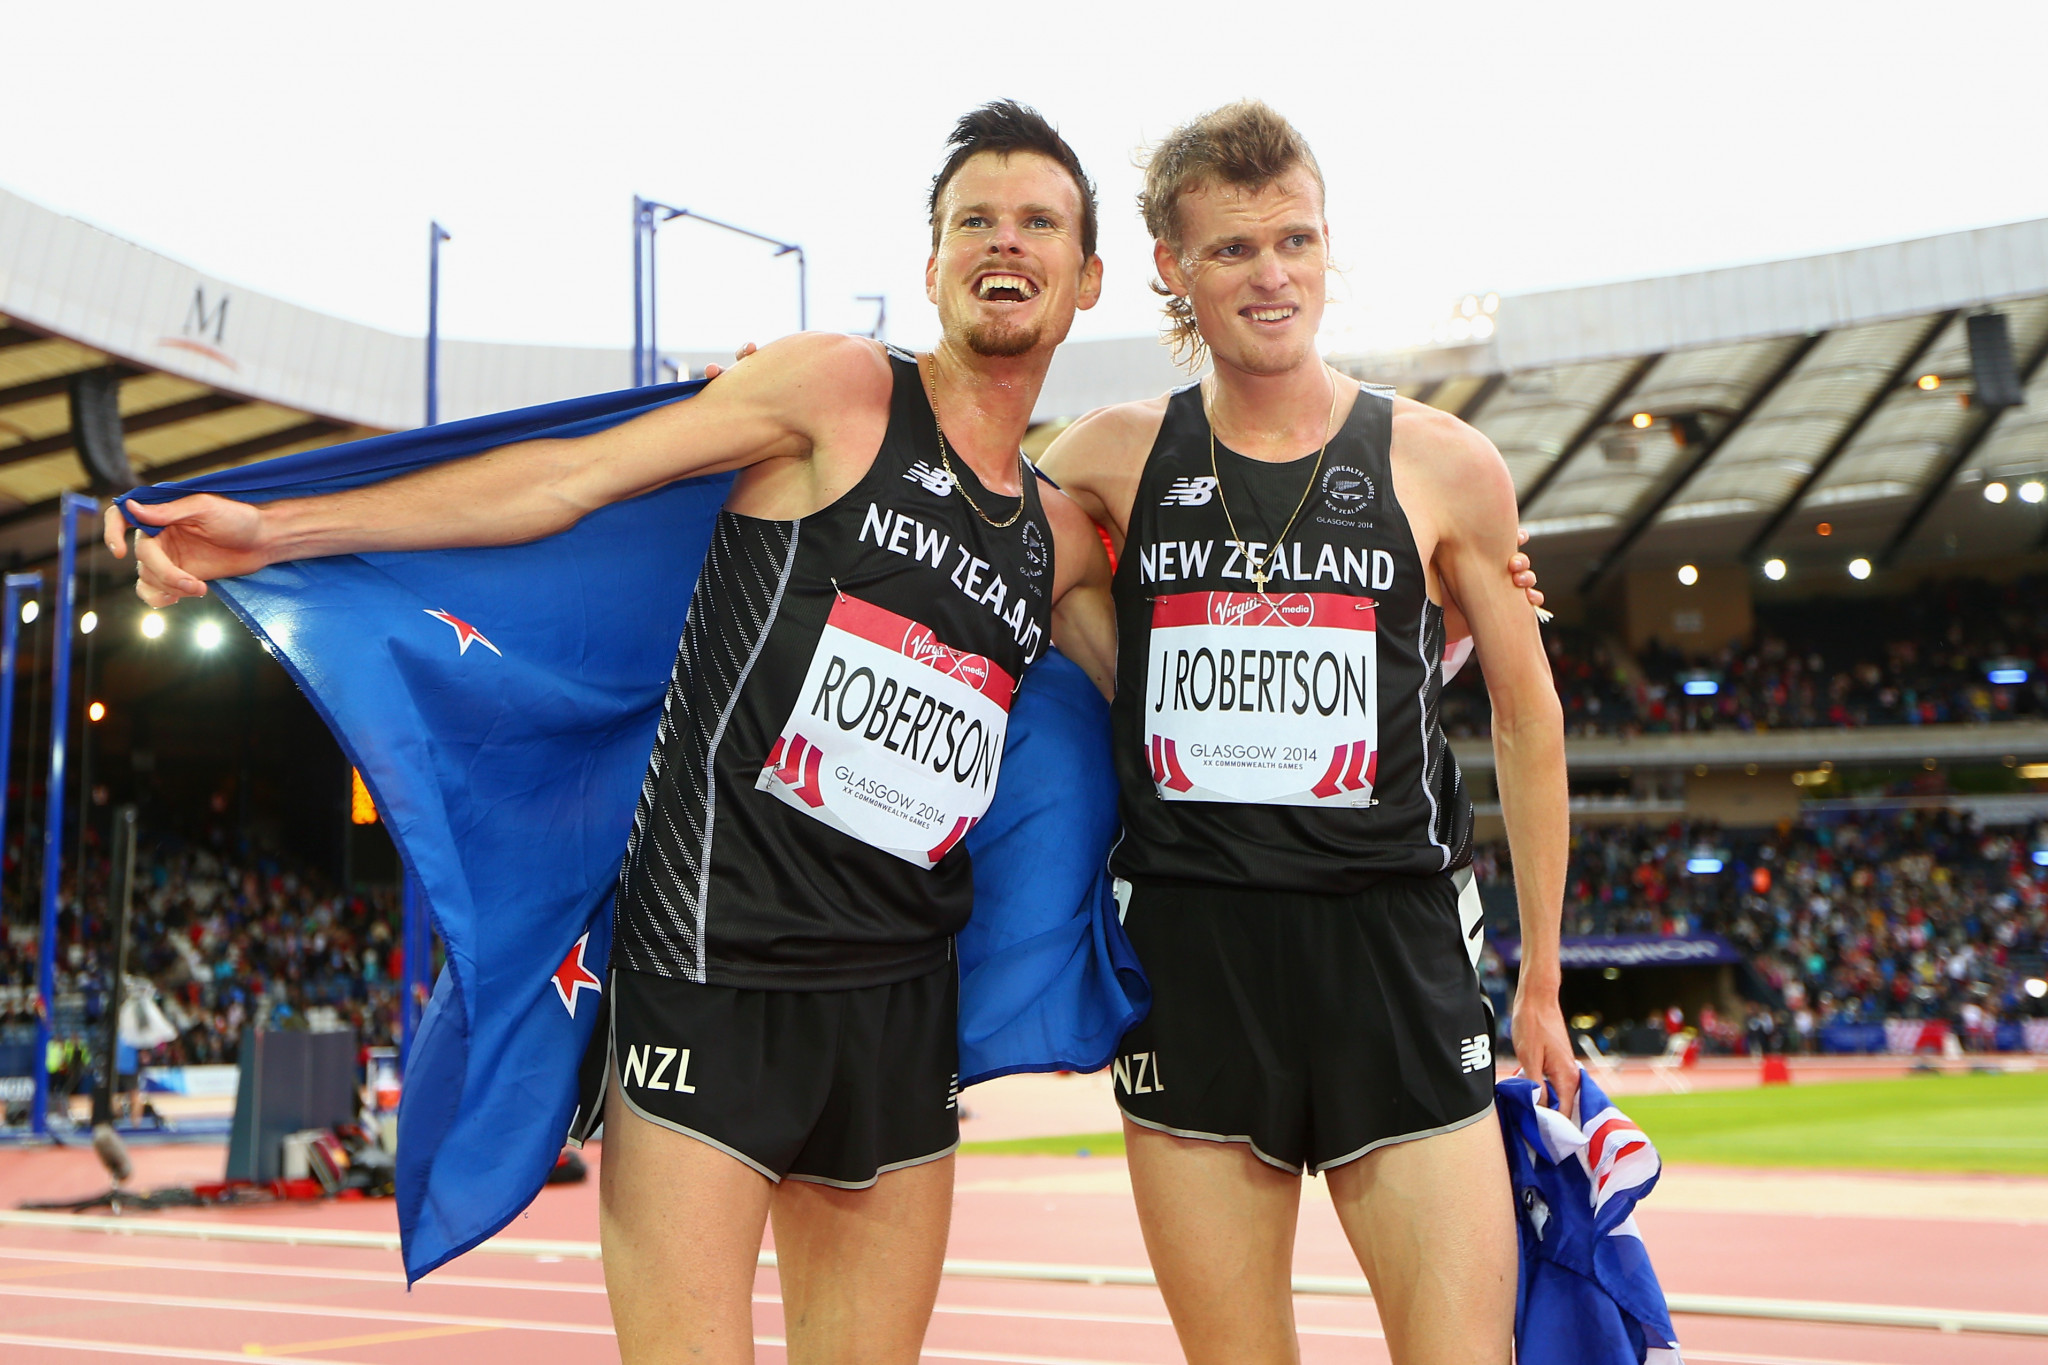 Robertson twins added to New Zealand athletics team for Gold Coast 2018